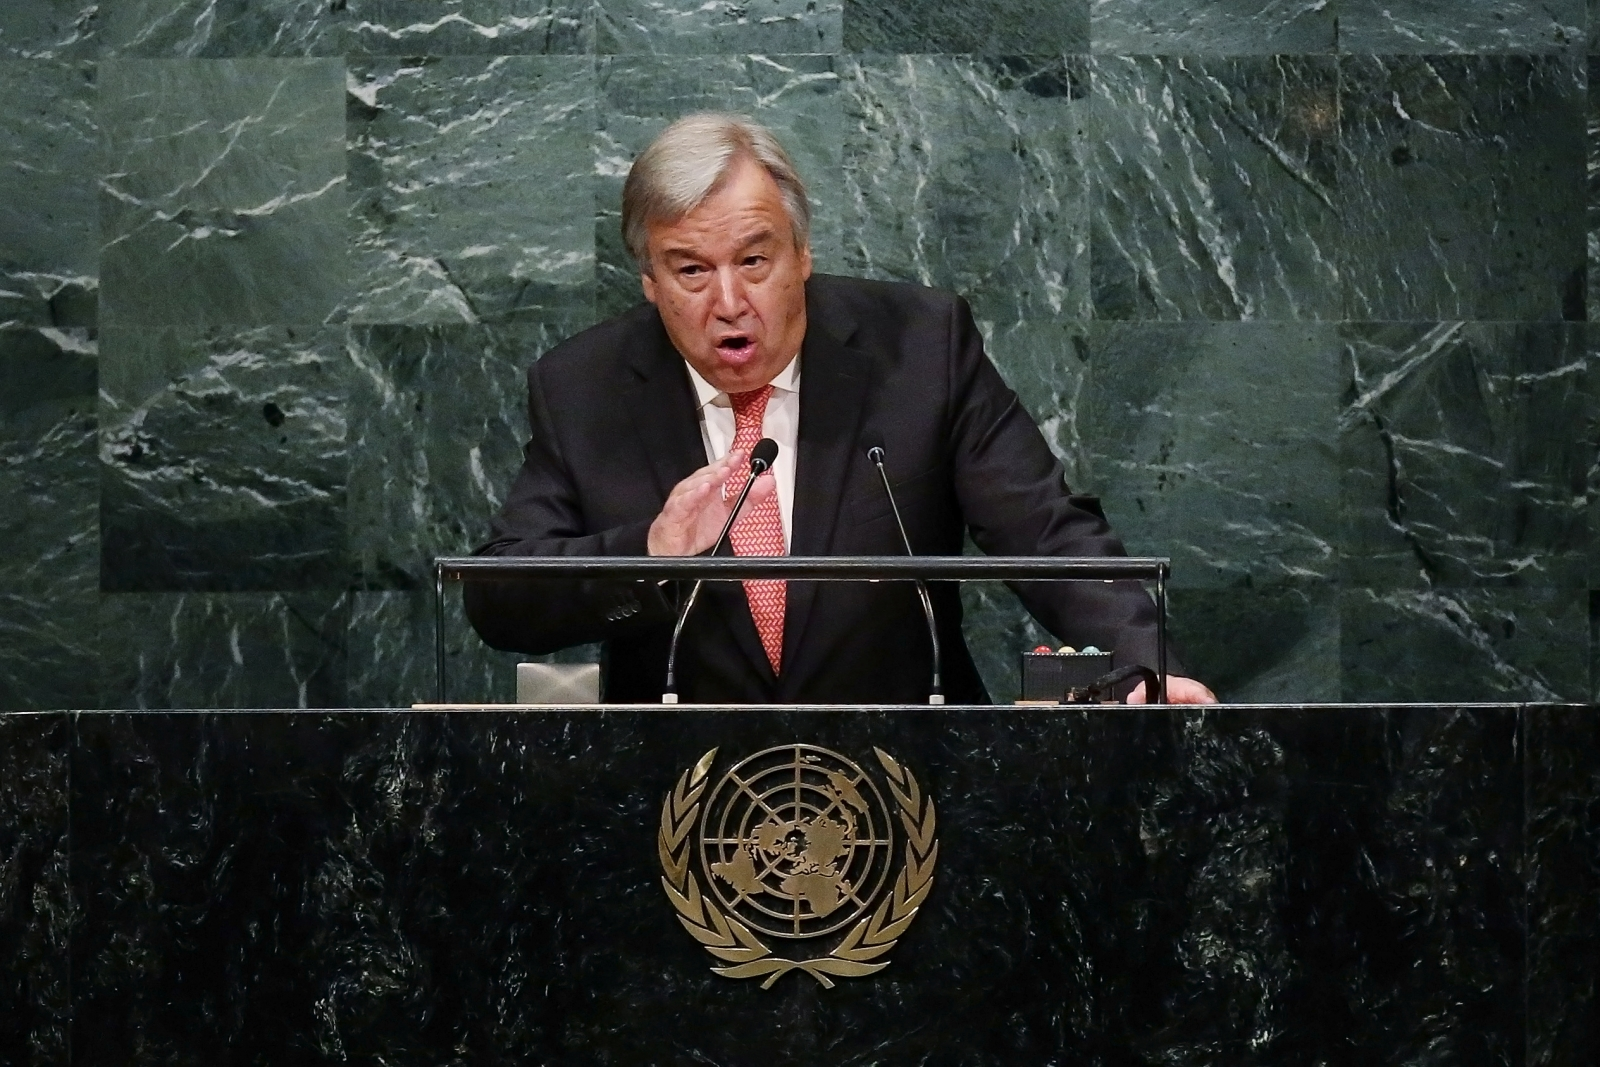 Portugal's Guterres appointed as new UN Secretary